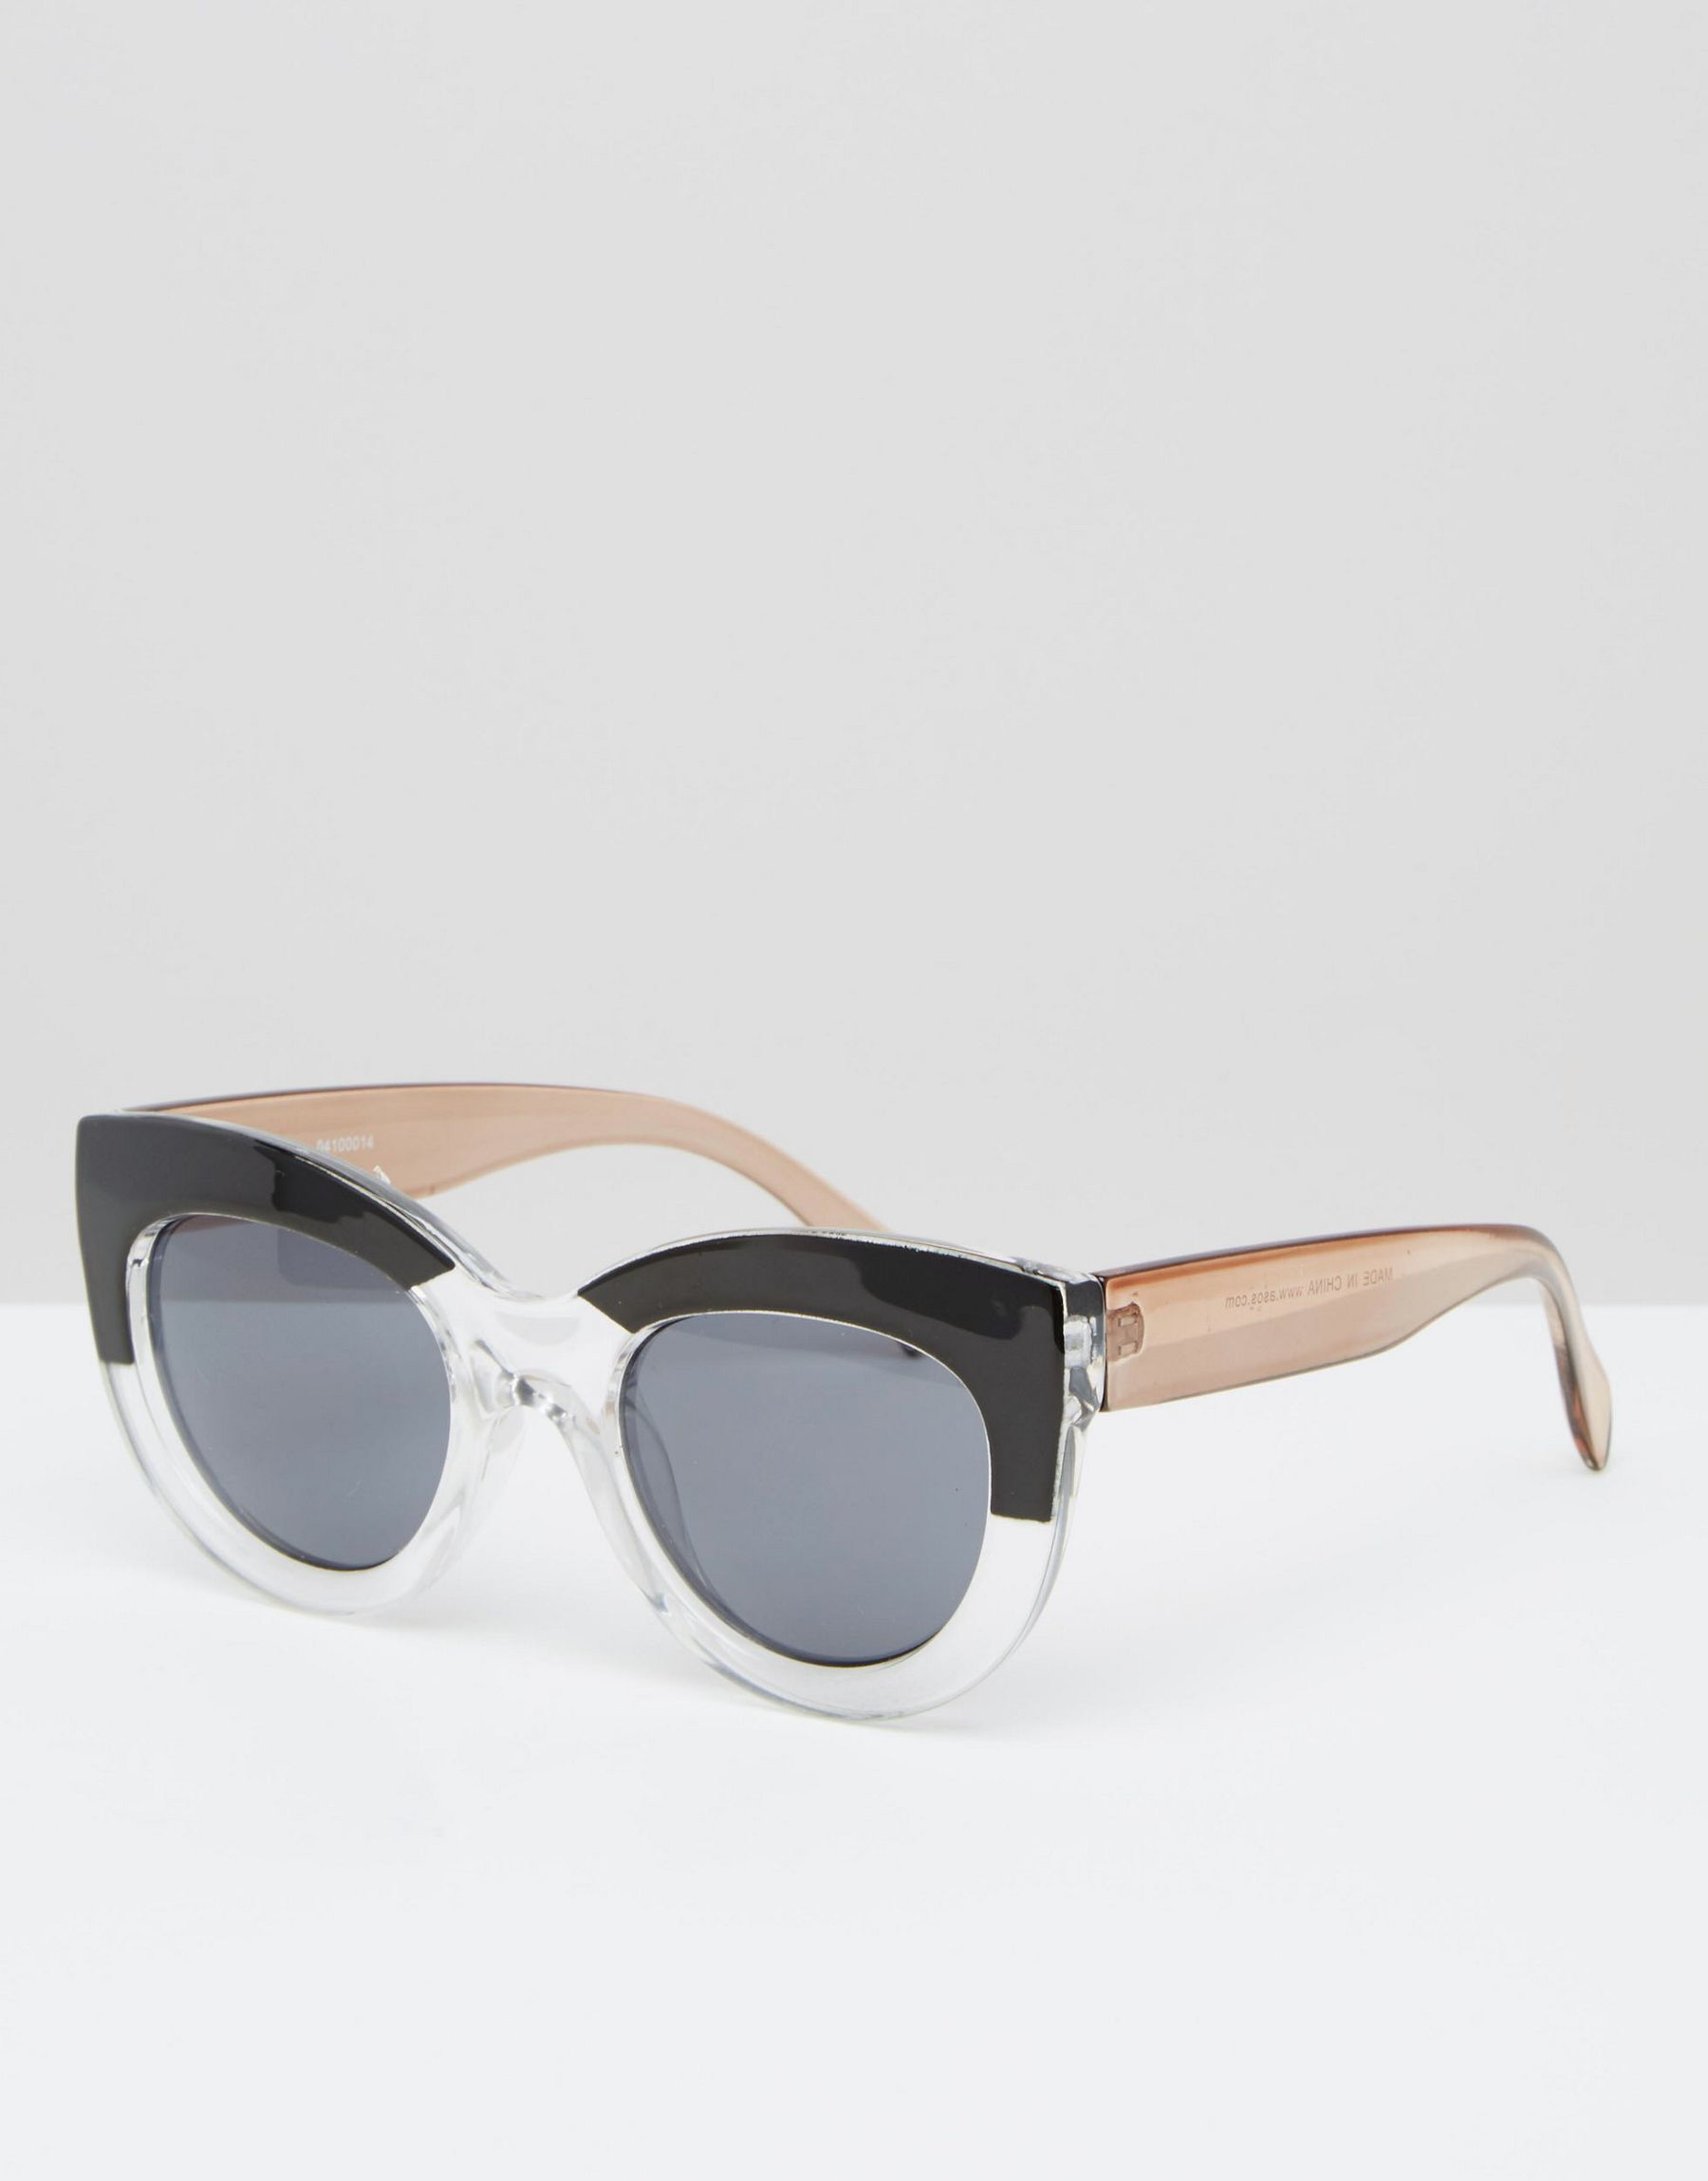 9bc31756f6 Lyst - ASOS Cat Eye Sunglasses In Chunky Frame And Mono Brow in Black